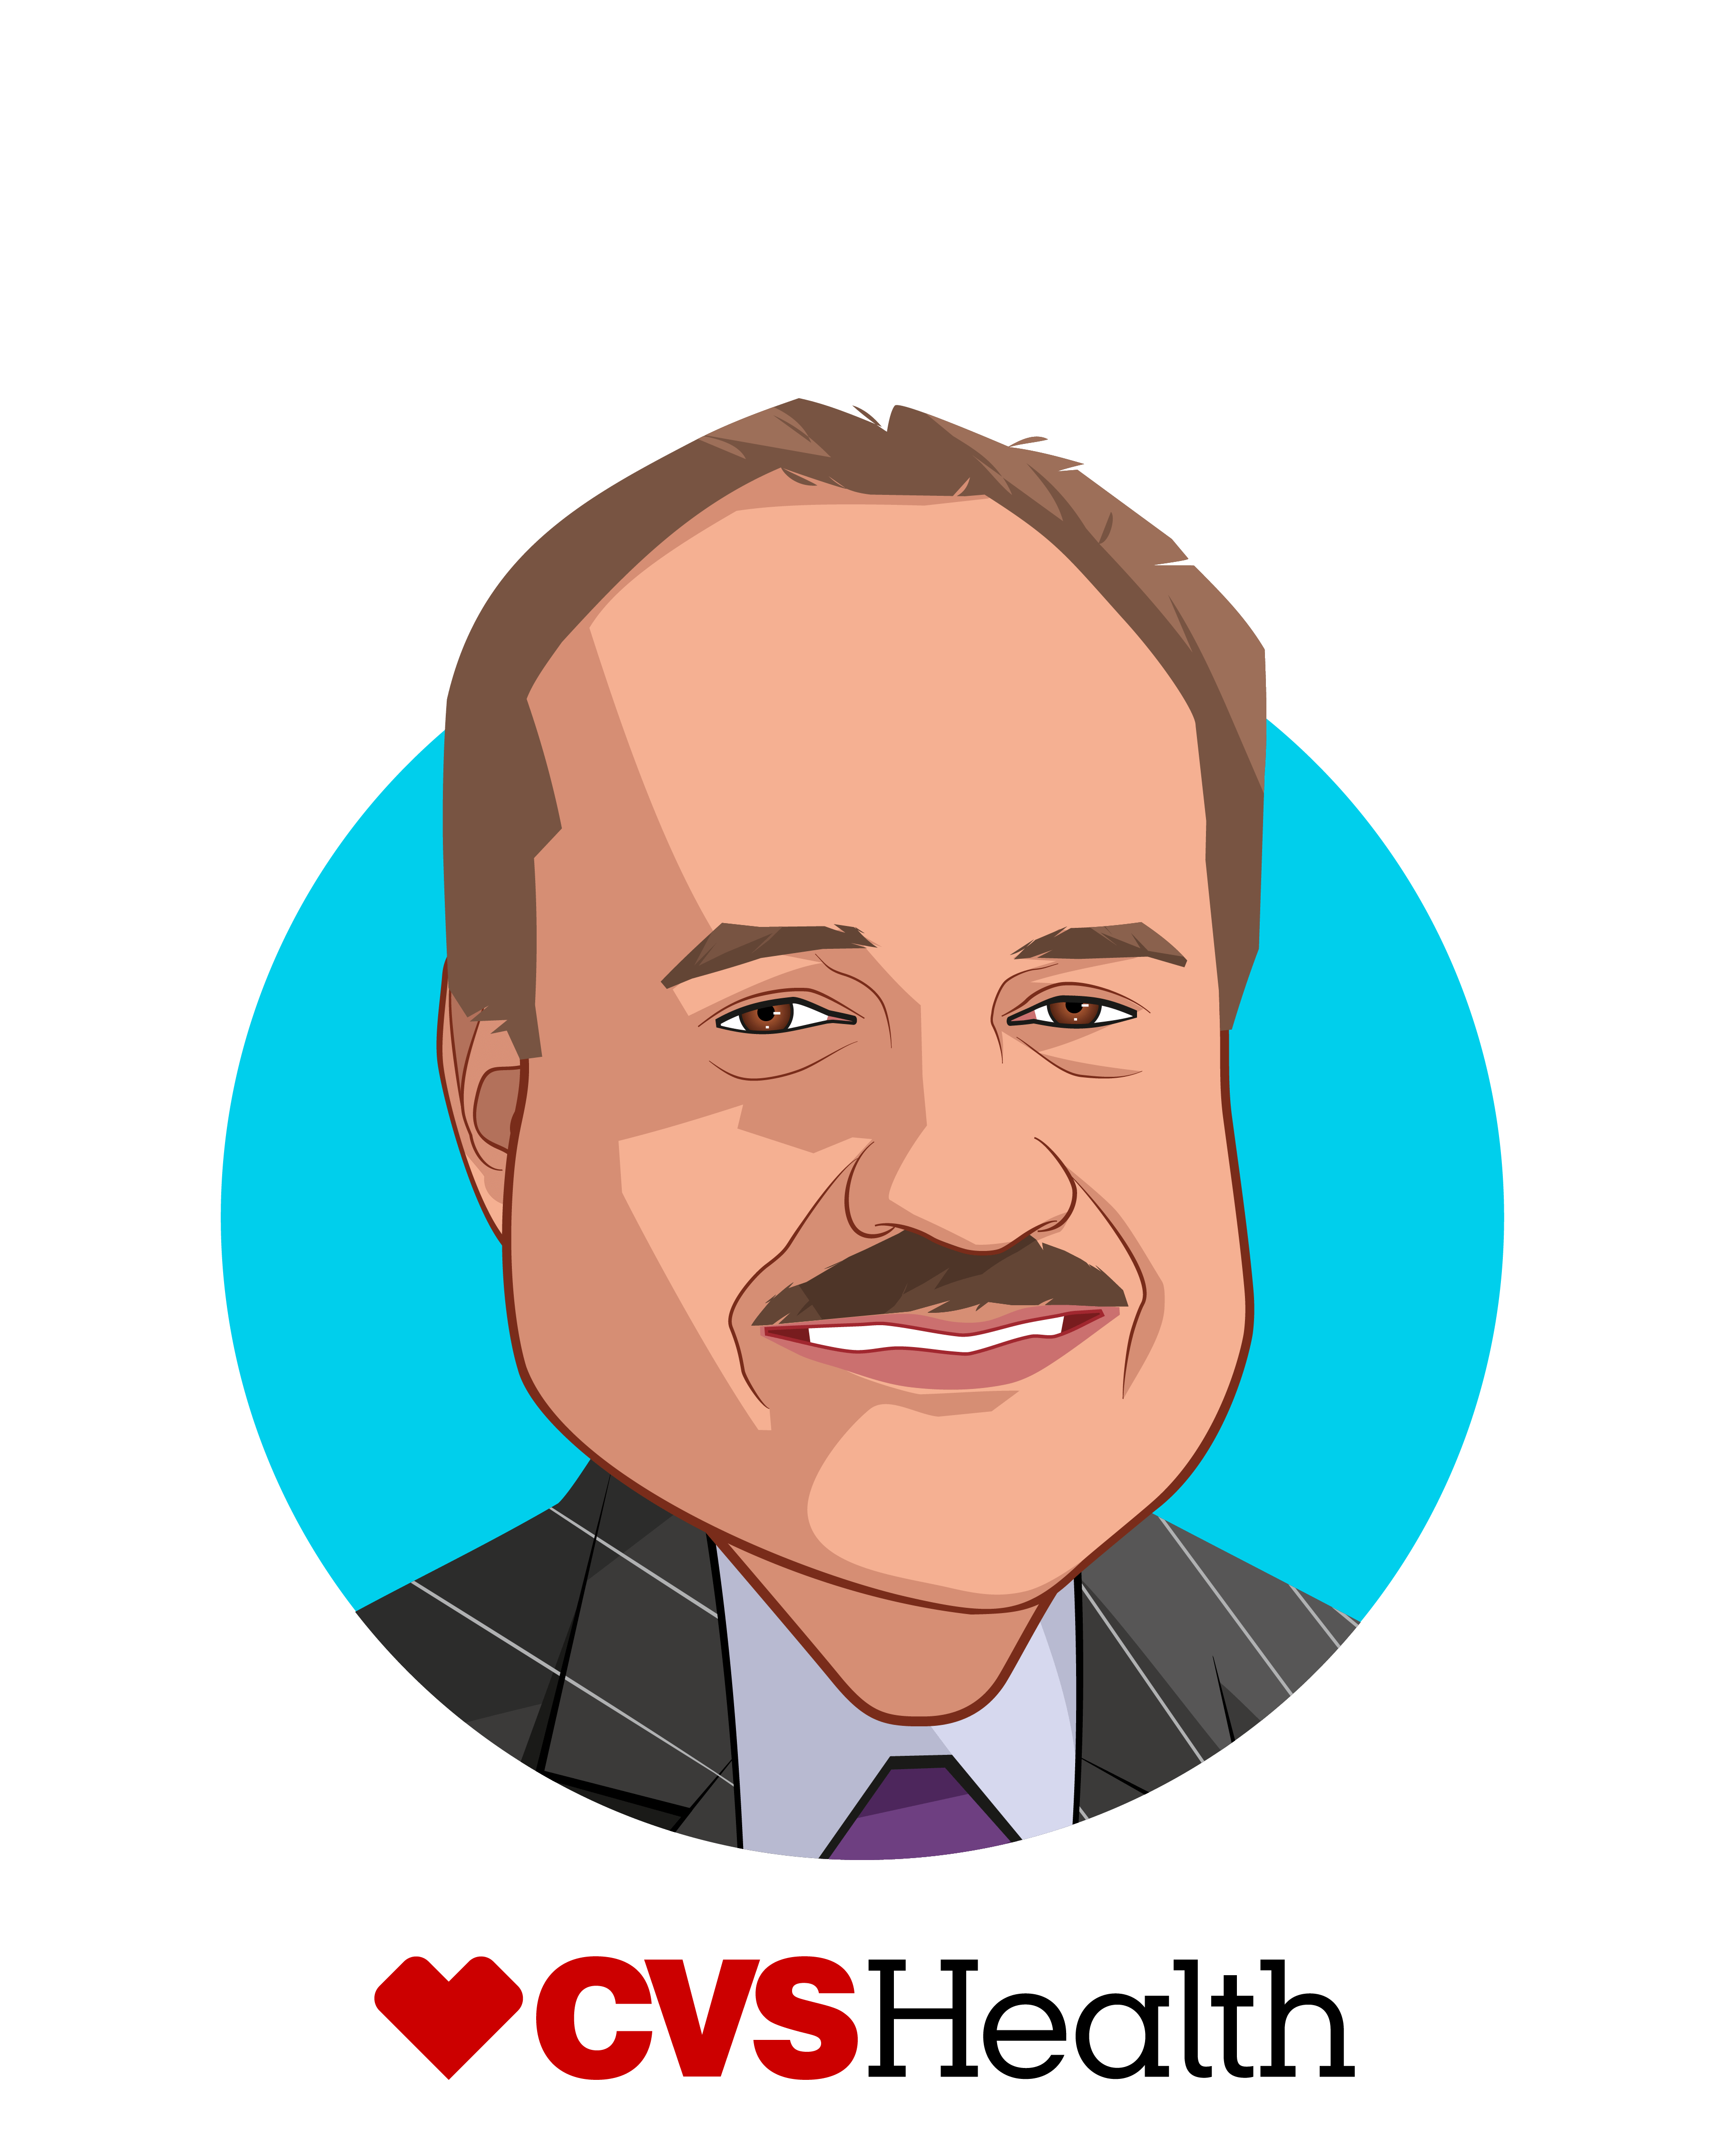 Main caricature of Larry Merlo, who is speaking at HLTH and is President and Chief Executive Officer at CVS Health